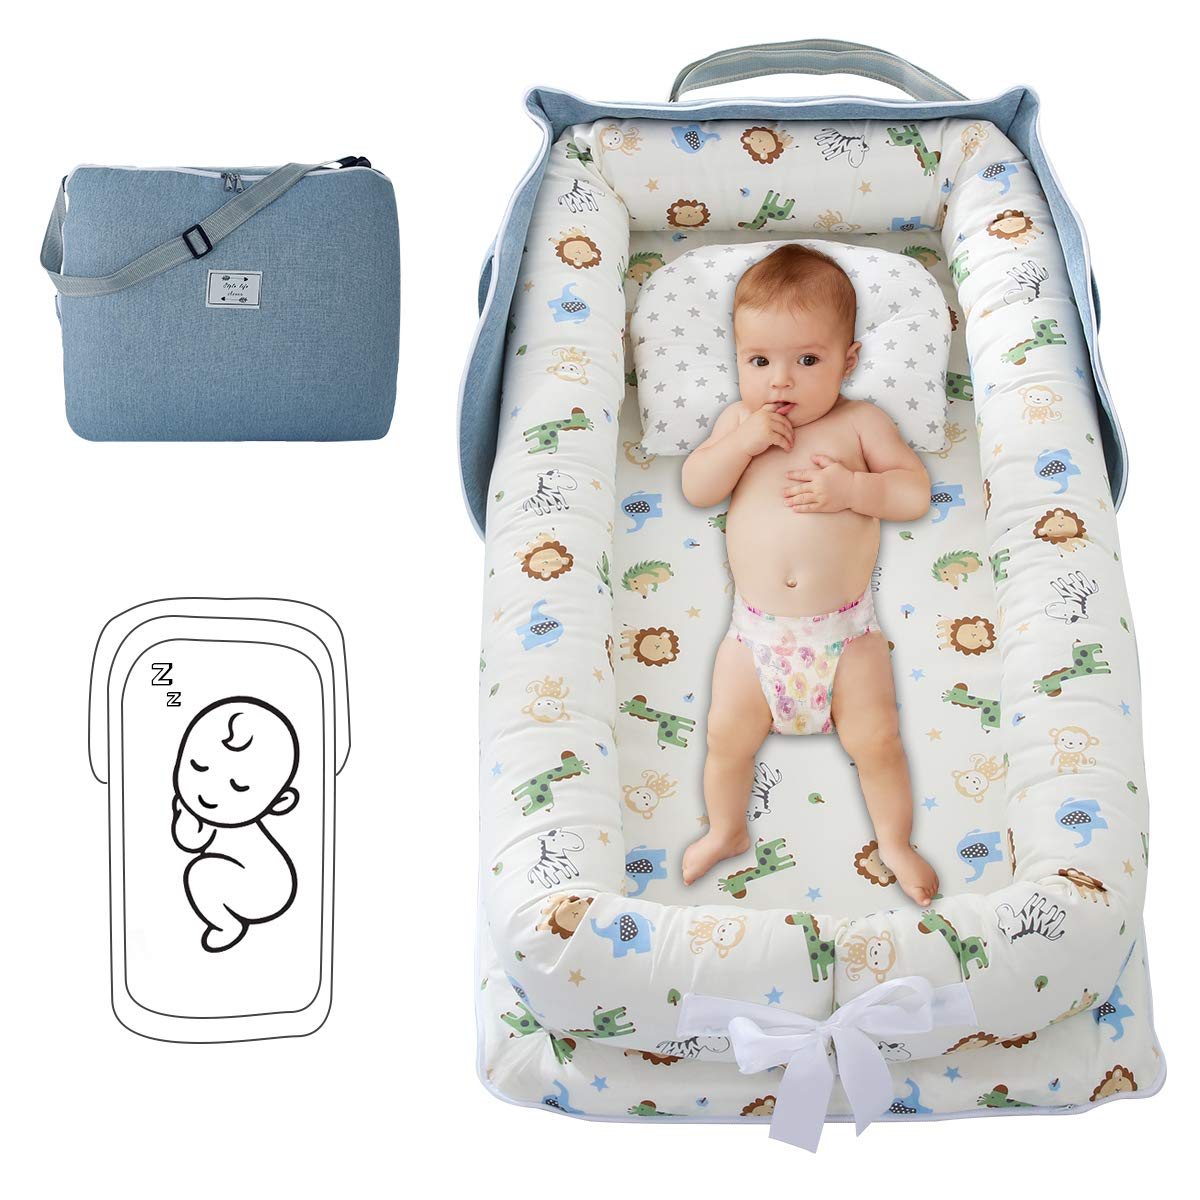 Yinuoday Baby Lounger Folding Portable Newborn Crib Infant Cotton Co Sleeping Bassinet for Travel Bedroom Outdoor